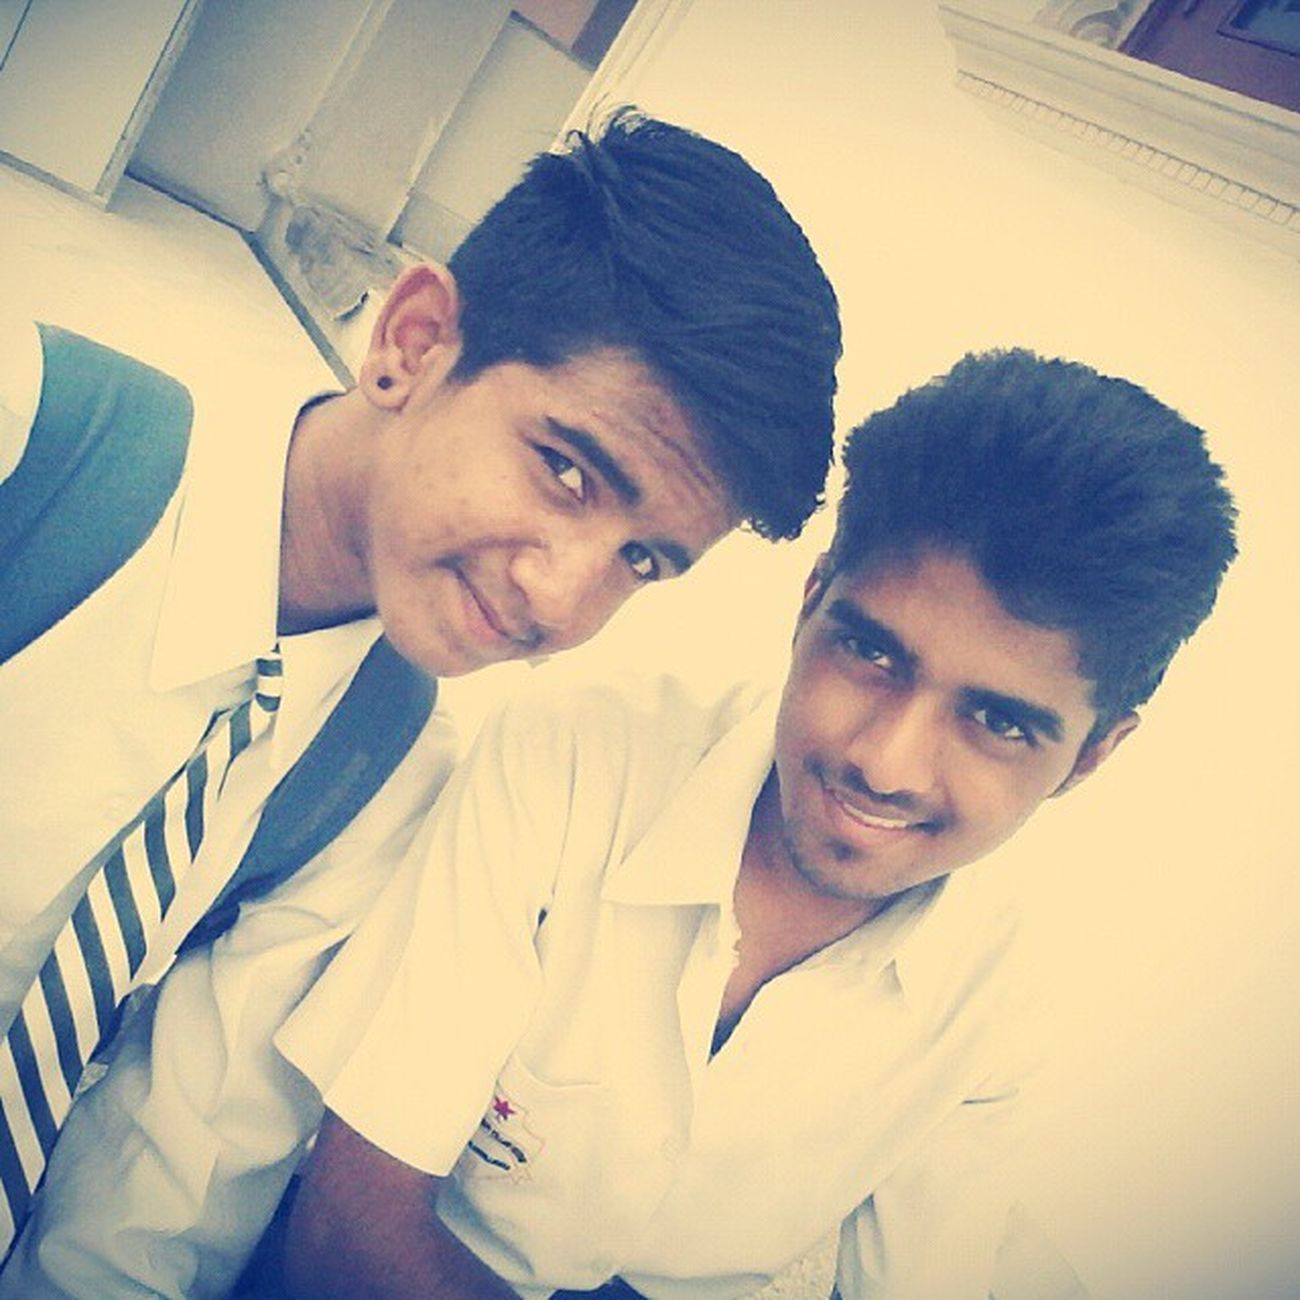 After_school fun 😜😊 Mastii Pagalpanti Full_Bawle 😁😎 Kutta Harami Bhai 😝😘❤